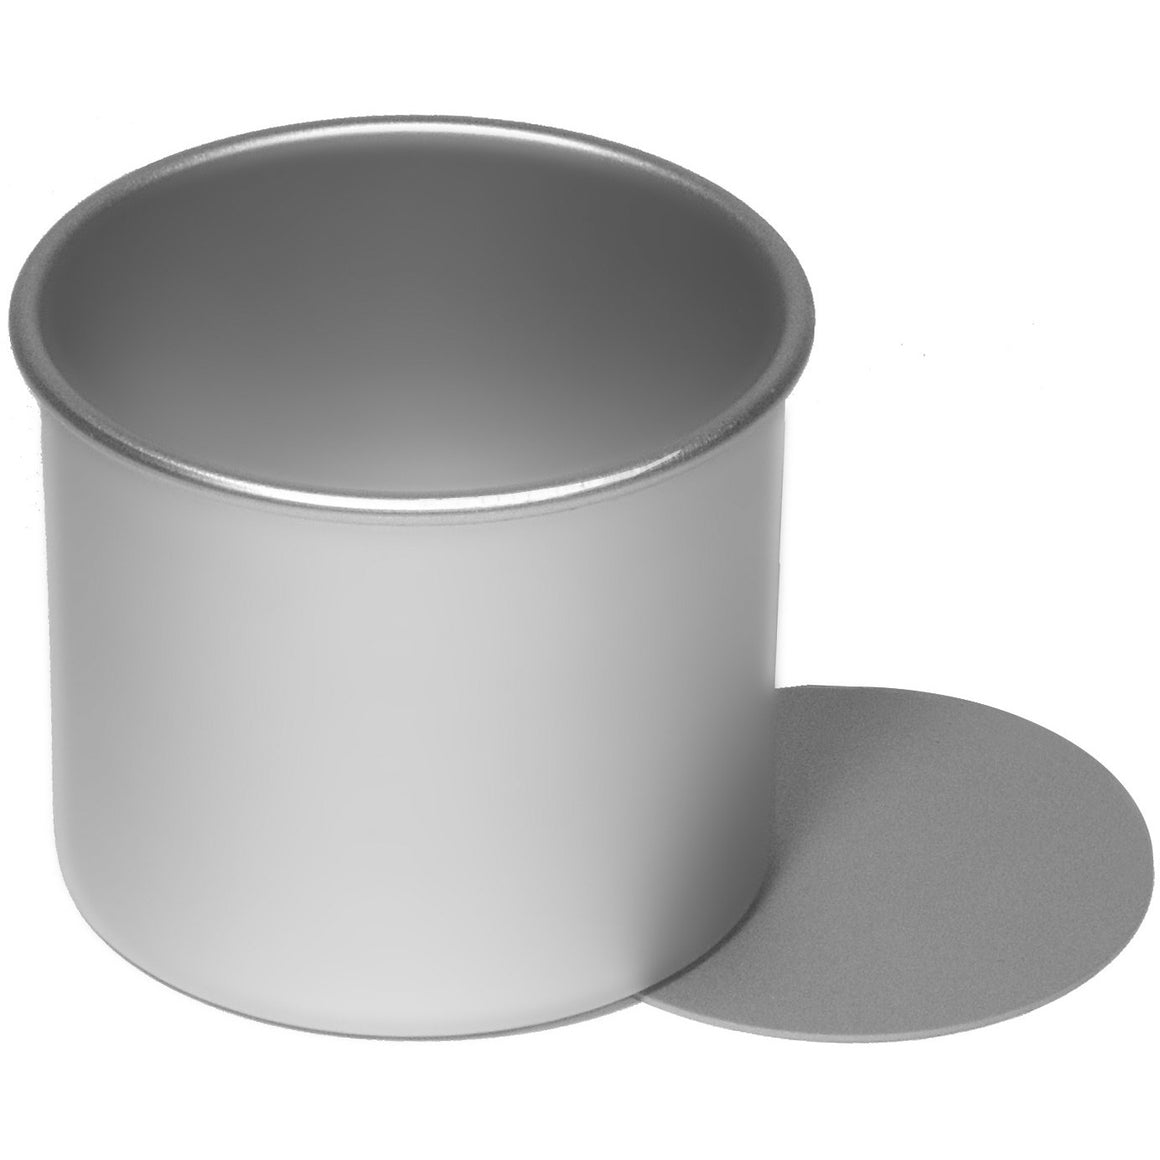 "Silverwood 4"" Pork Pie Tin"